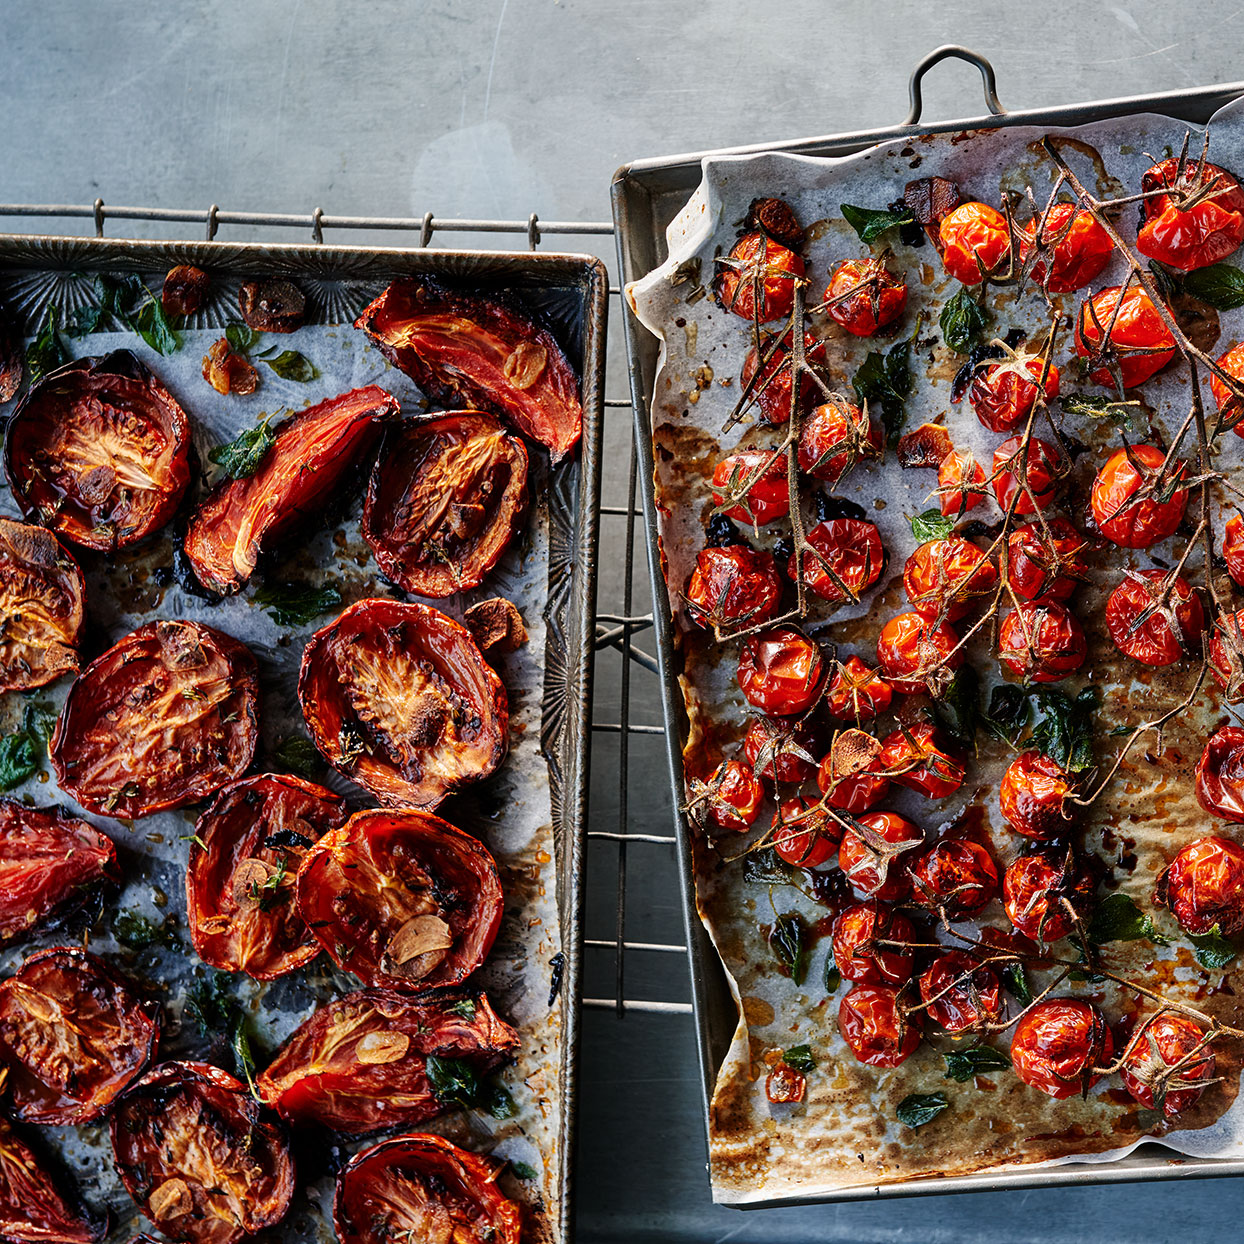 Slowly cooking summer-ripe tomatoes in a low oven makes them candy-sweet. Turn to this recipe to preserve the summer bounty from your garden or farmers' market; it freezes well for up to 6 months. Tuck these tasty bites into sandwiches; stir them into risotto; or chop them and mix with Kalamata olives, olive oil and fresh herbs to scoop up with pita chips. Source: EatingWell Magazine, September 2020